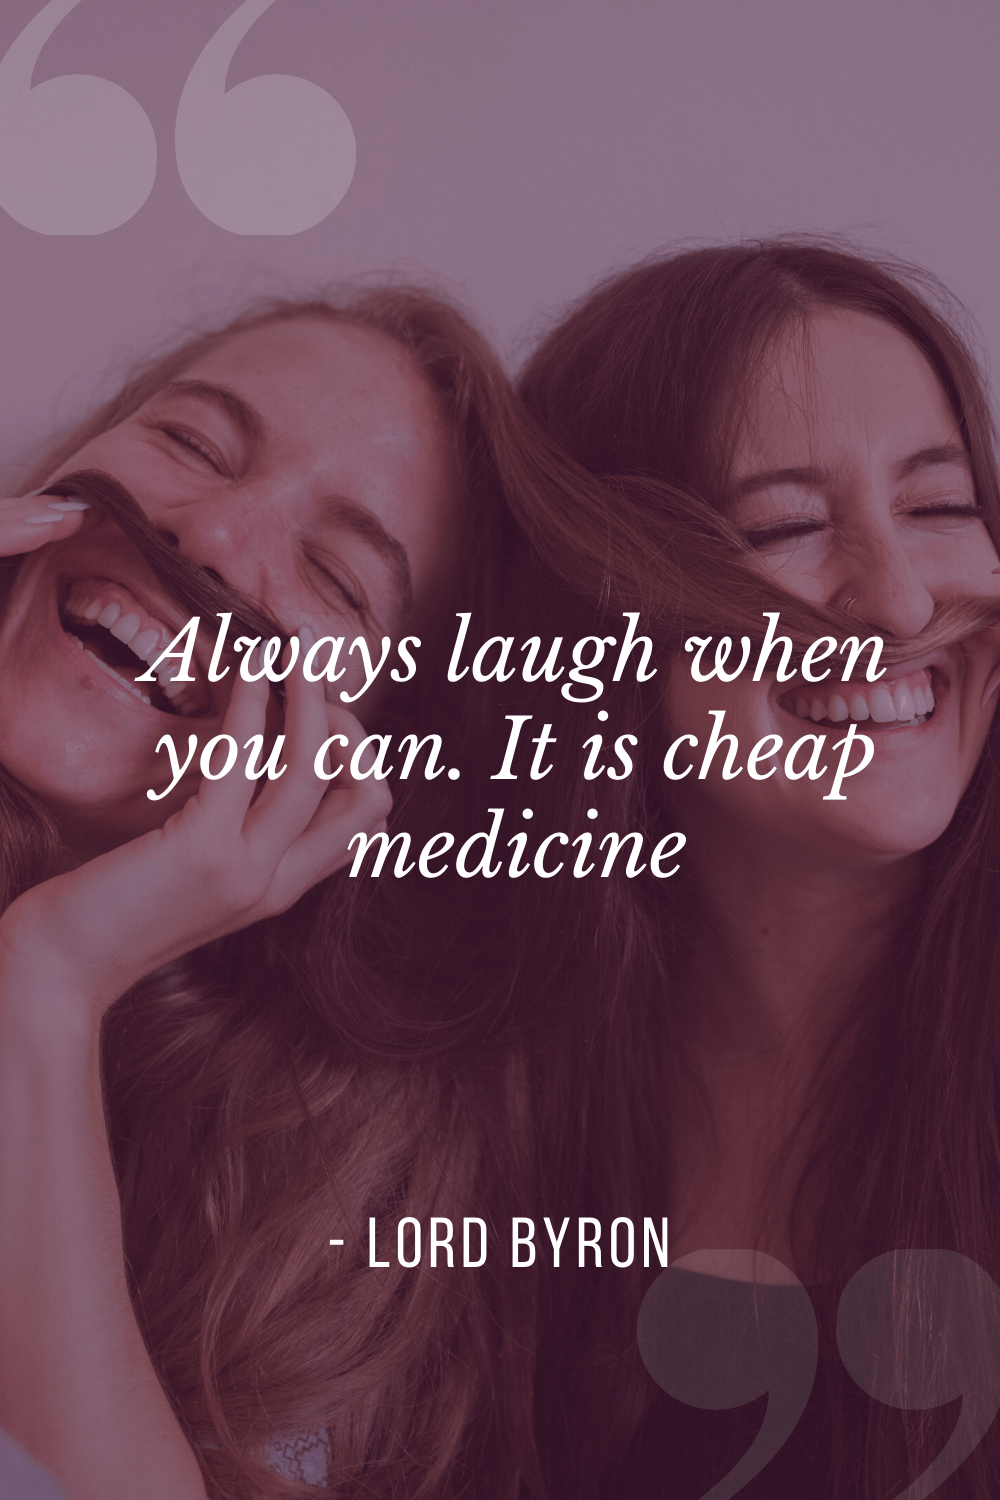 """Always laugh when you can. It is cheap medicine"", Lord Byron"